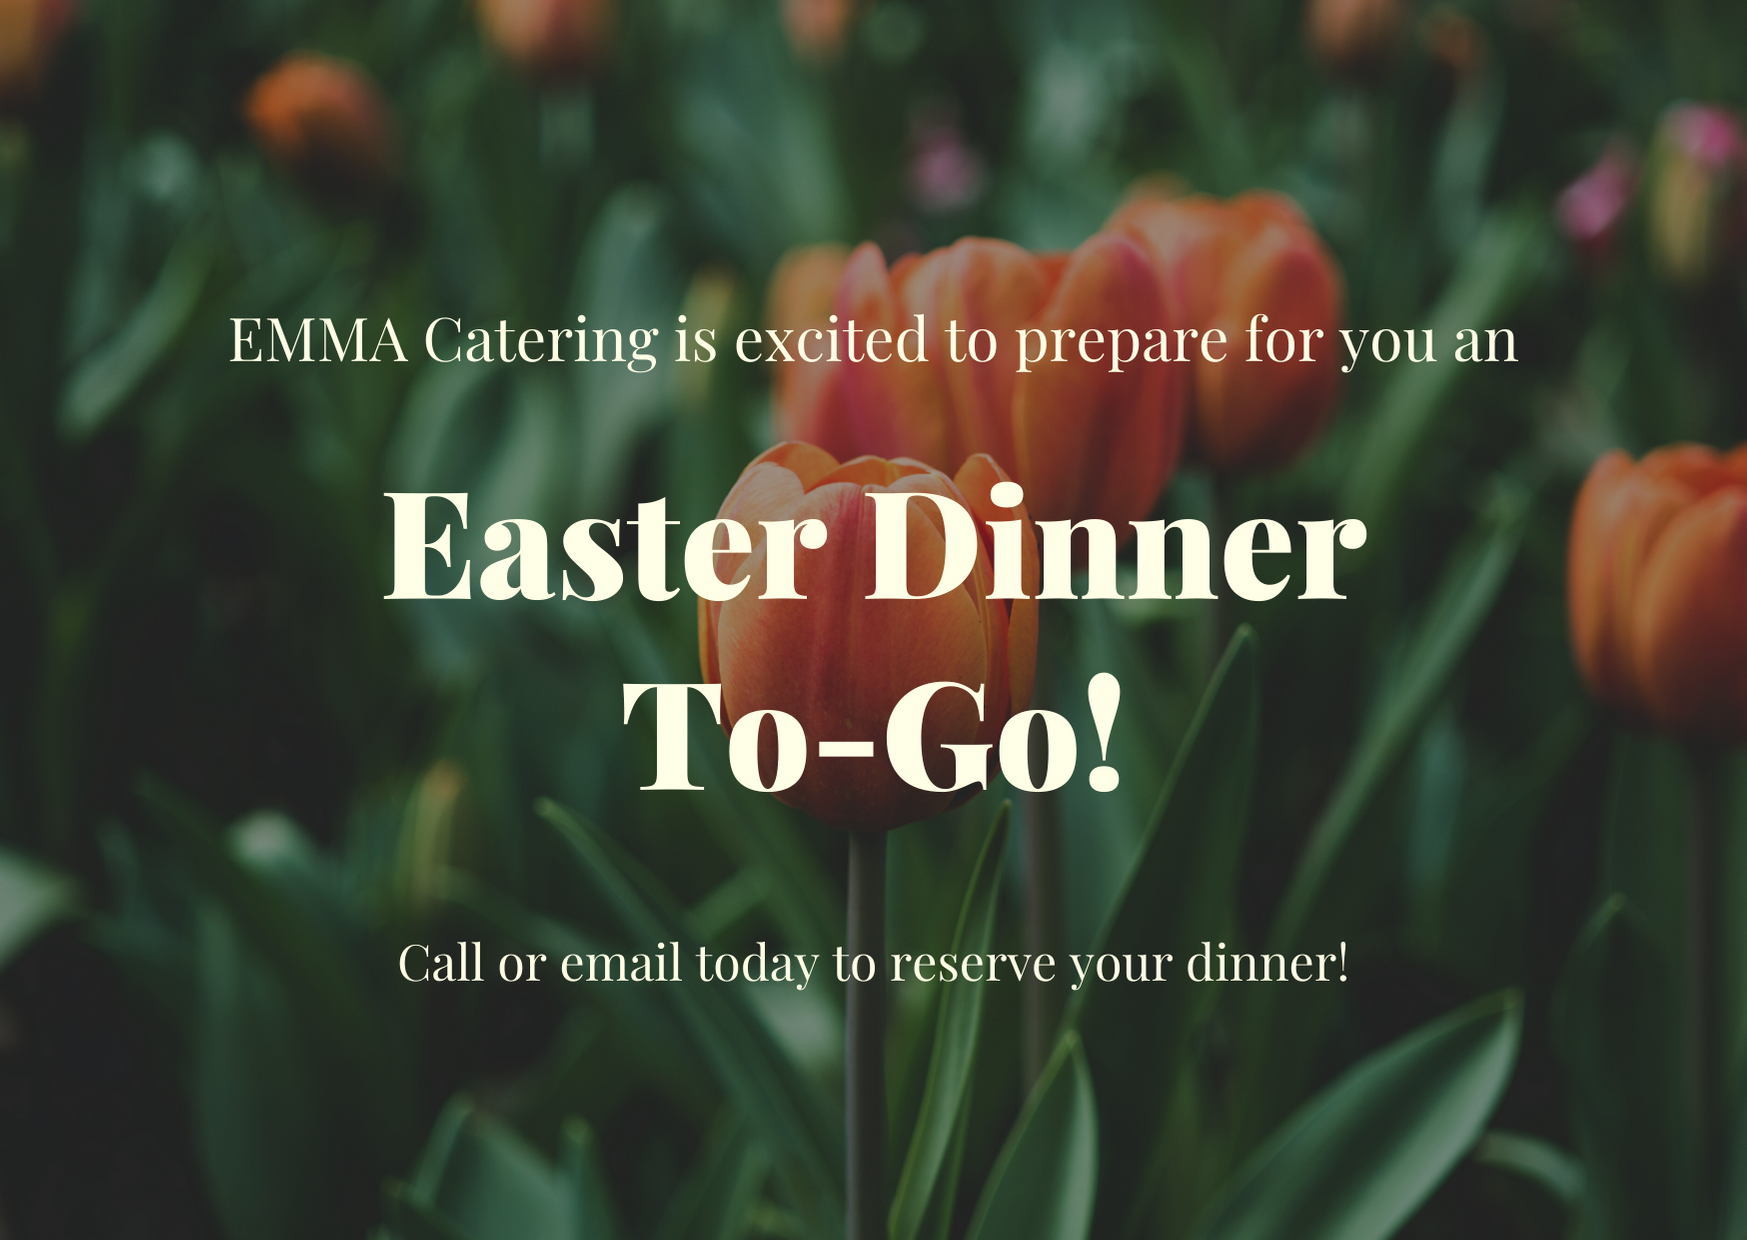 Easter Dinner To-Go (By EMMA Catering)